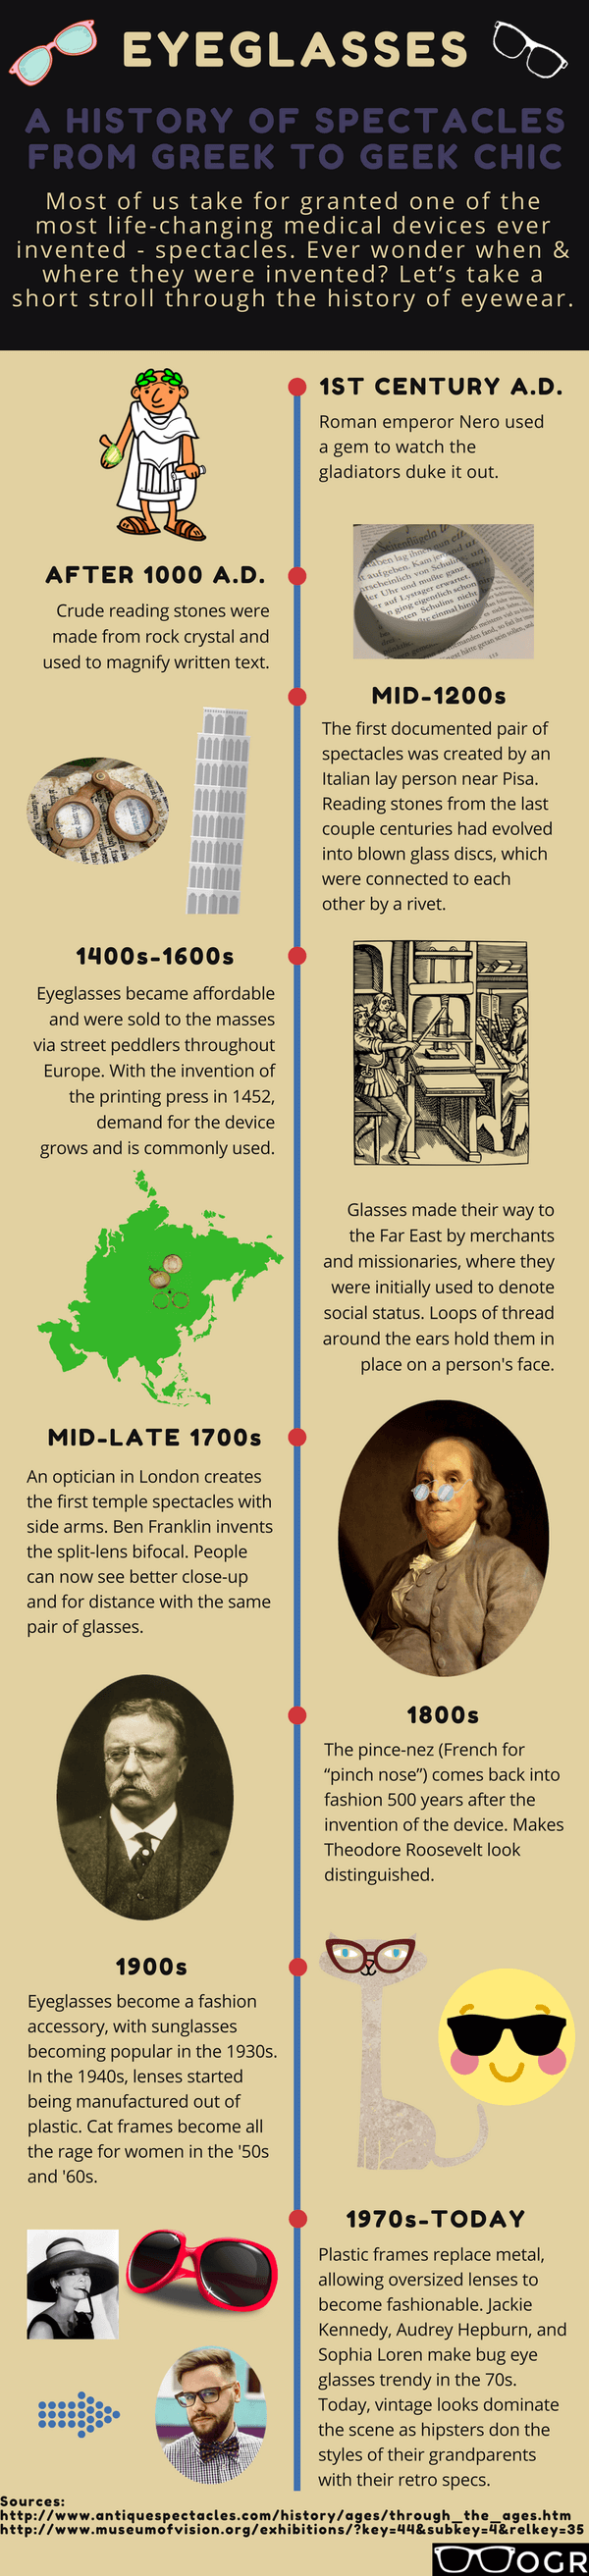 Eyeglasses: A History of Spectacles from Greek to Geek Chic